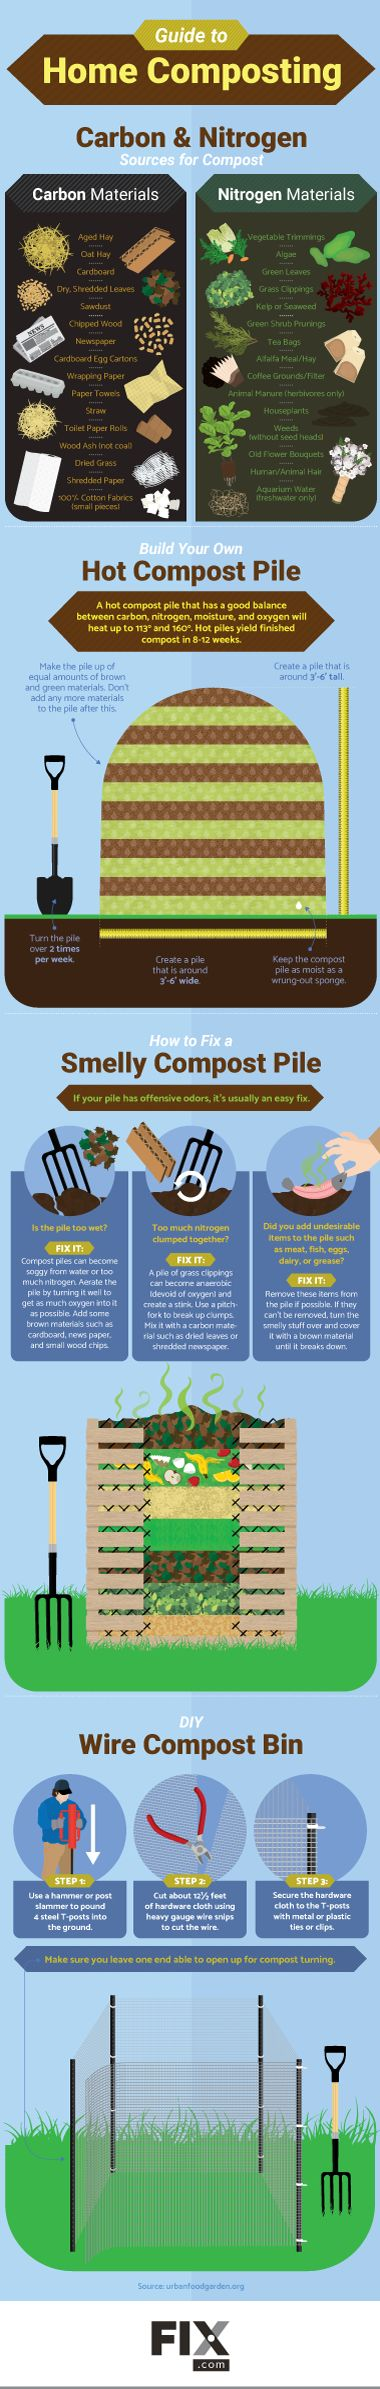 Read our tips for constructing your own DIY compost bin, and keeping compost odors to a minimum!